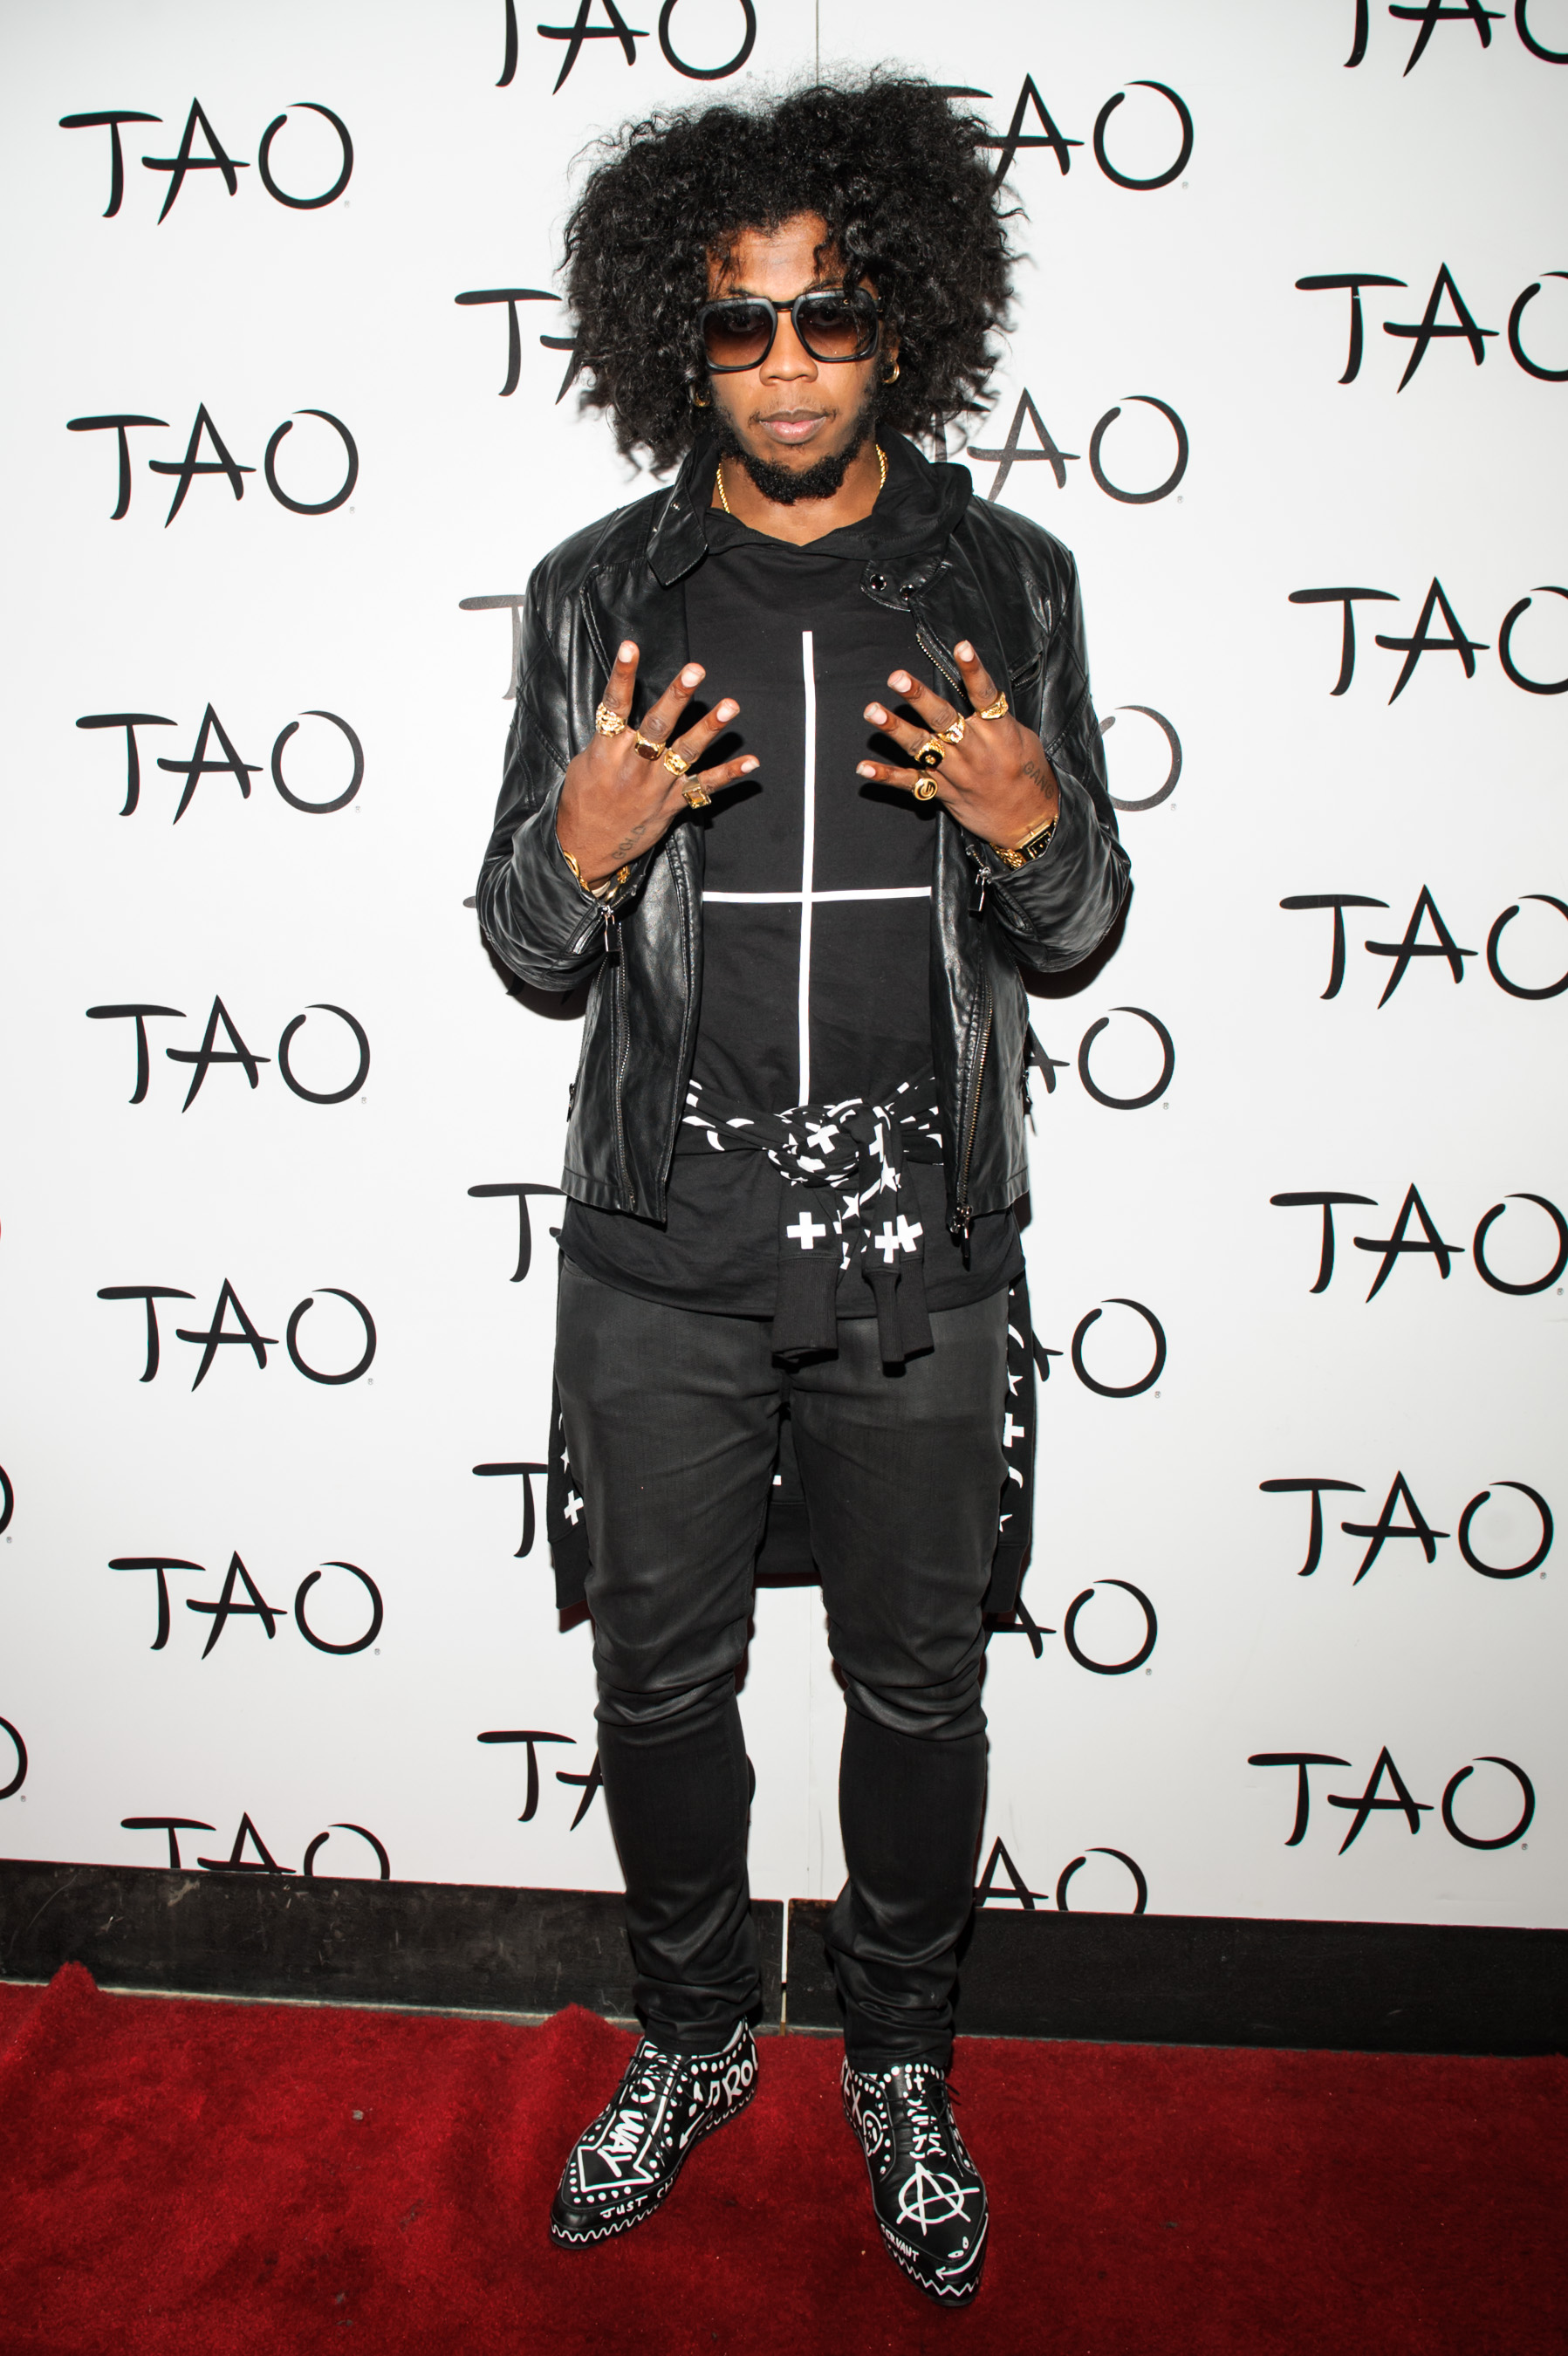 Trinidad James on the red carpet without a hat on.jpg